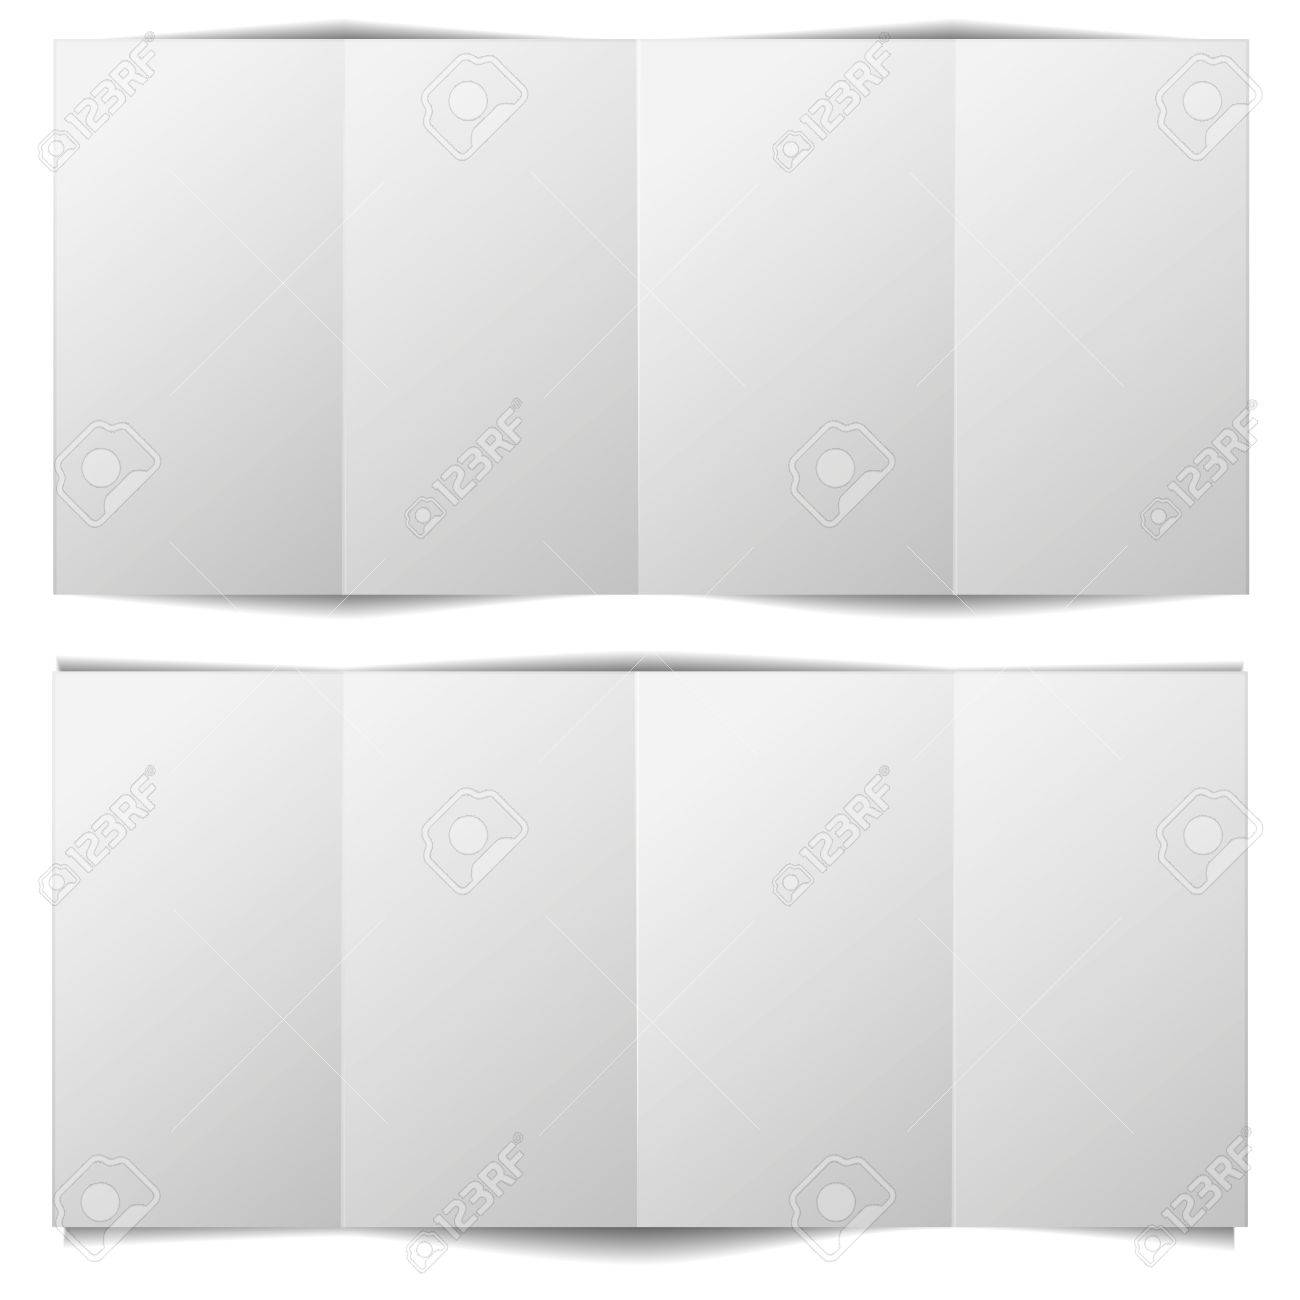 Detailed Illustration Of A Blank Brochure Template Stock Vector   26395374